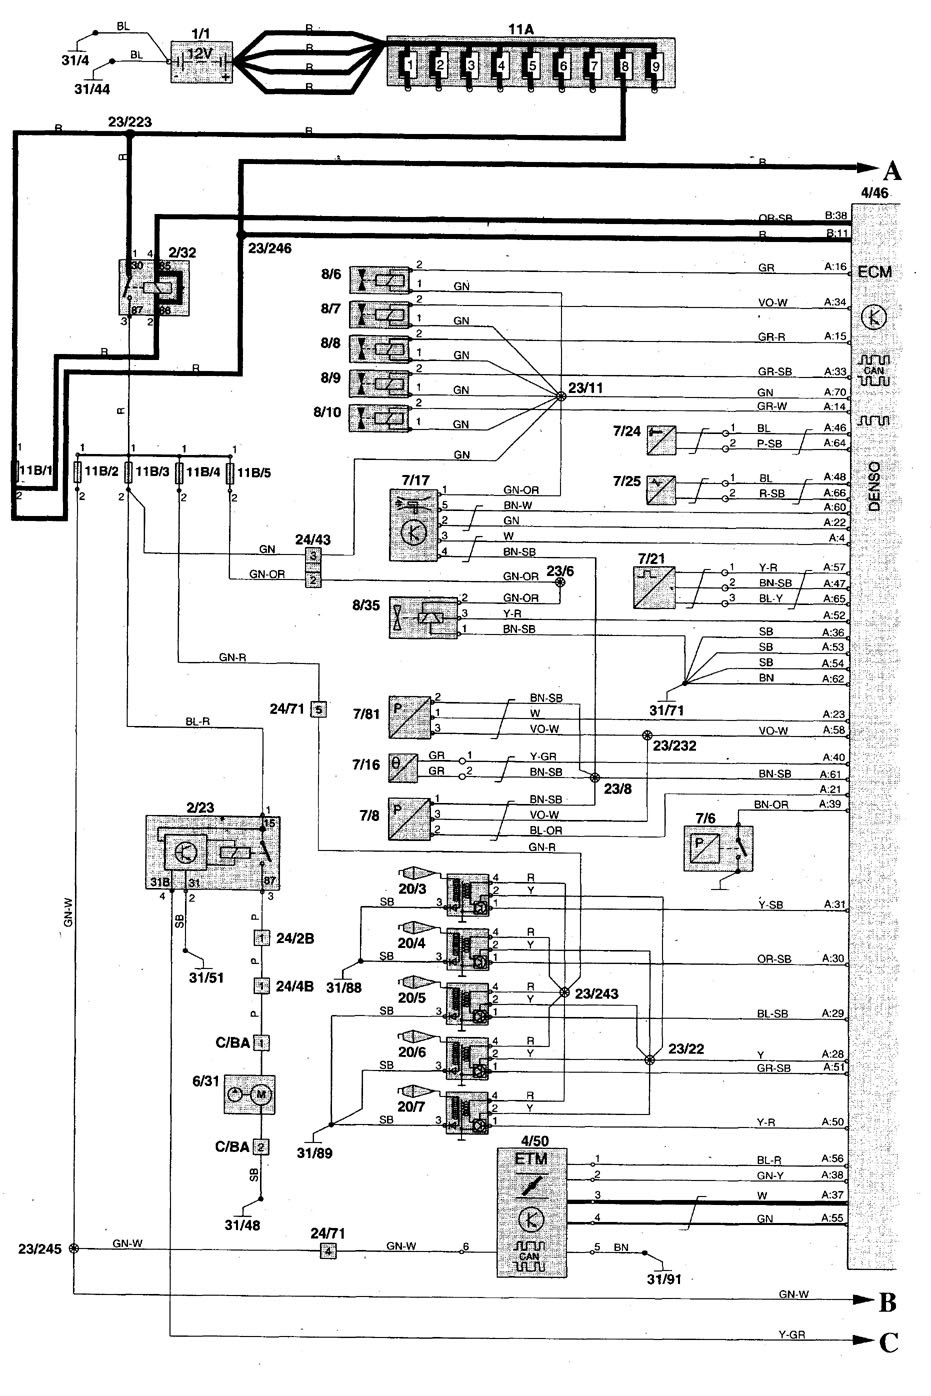 volvo c70 wiring diagram fuel pump 3 1999 c70 wiring diagram 1969 honda ct90 wiring diagram \u2022 wiring volvo amazon wiring diagram at fashall.co